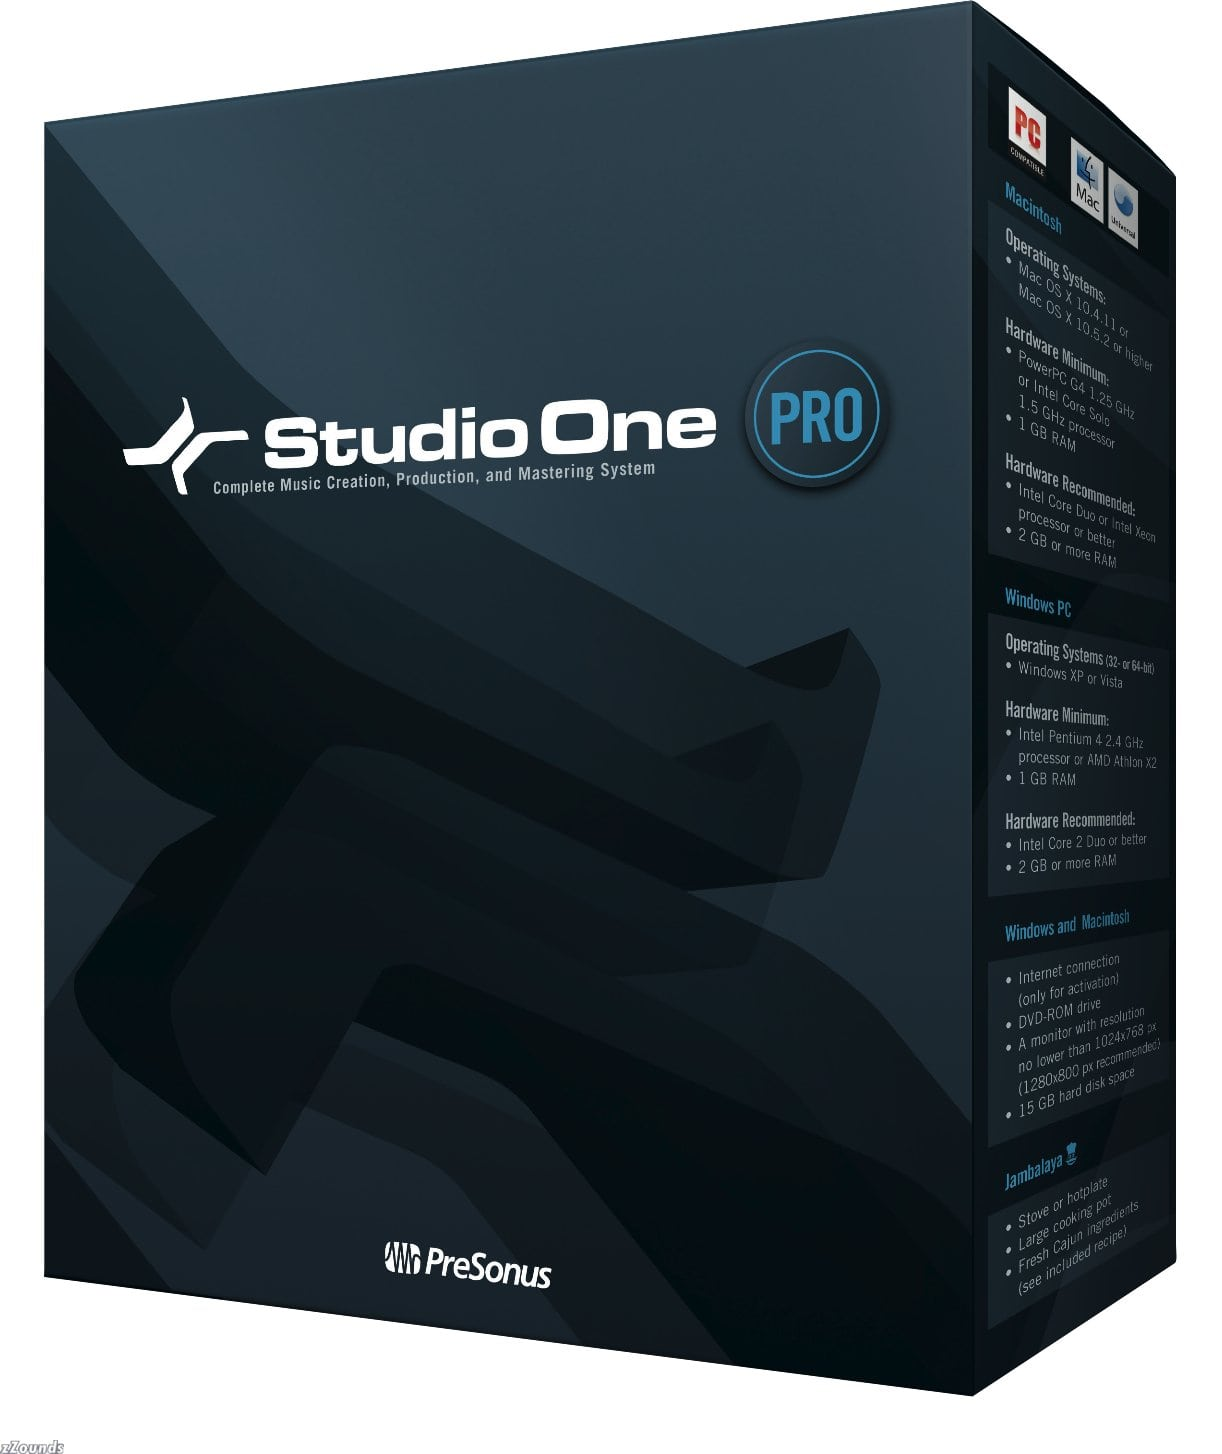 Download Gratis PreSonus Studio One Pro Full Version Terbaru